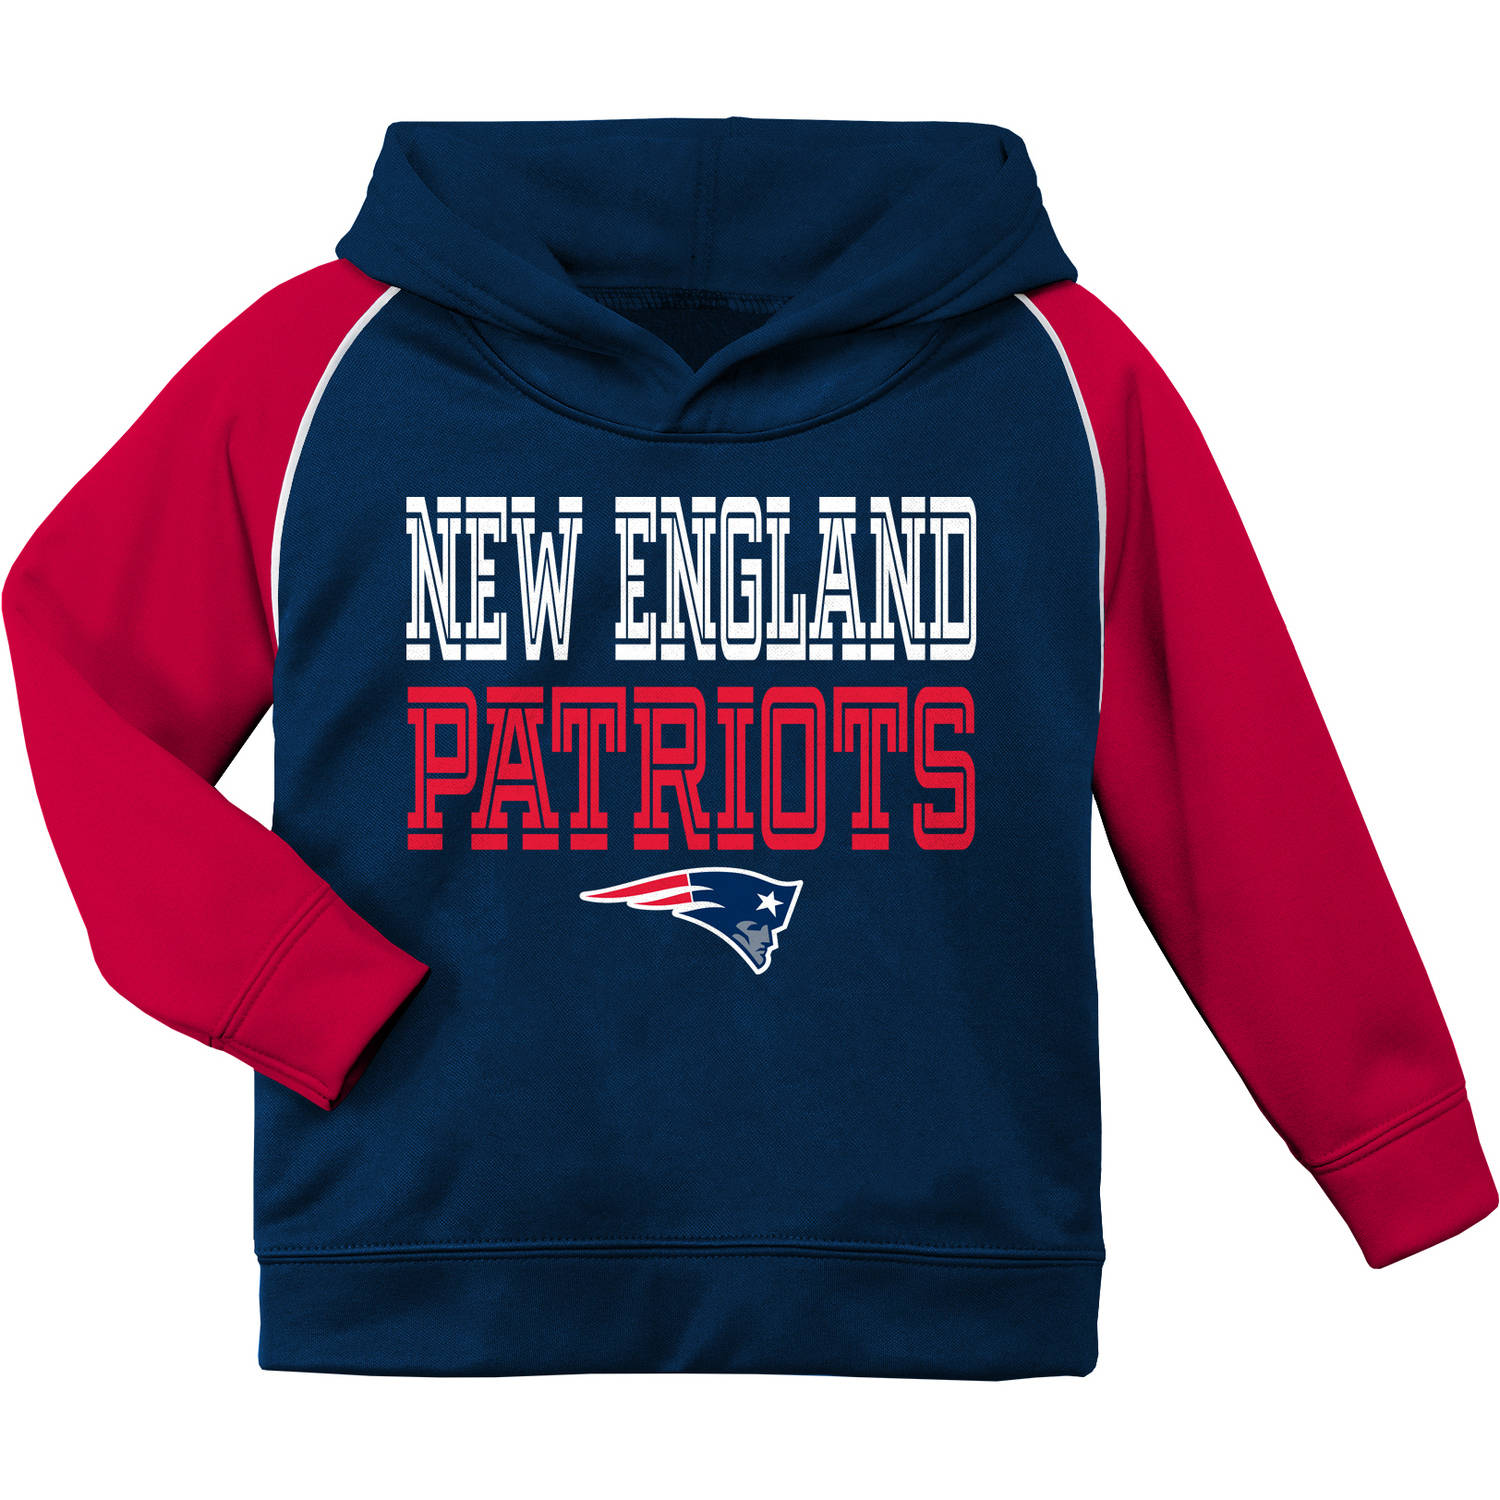 NFL New England Patriots Toddler Fleece Top